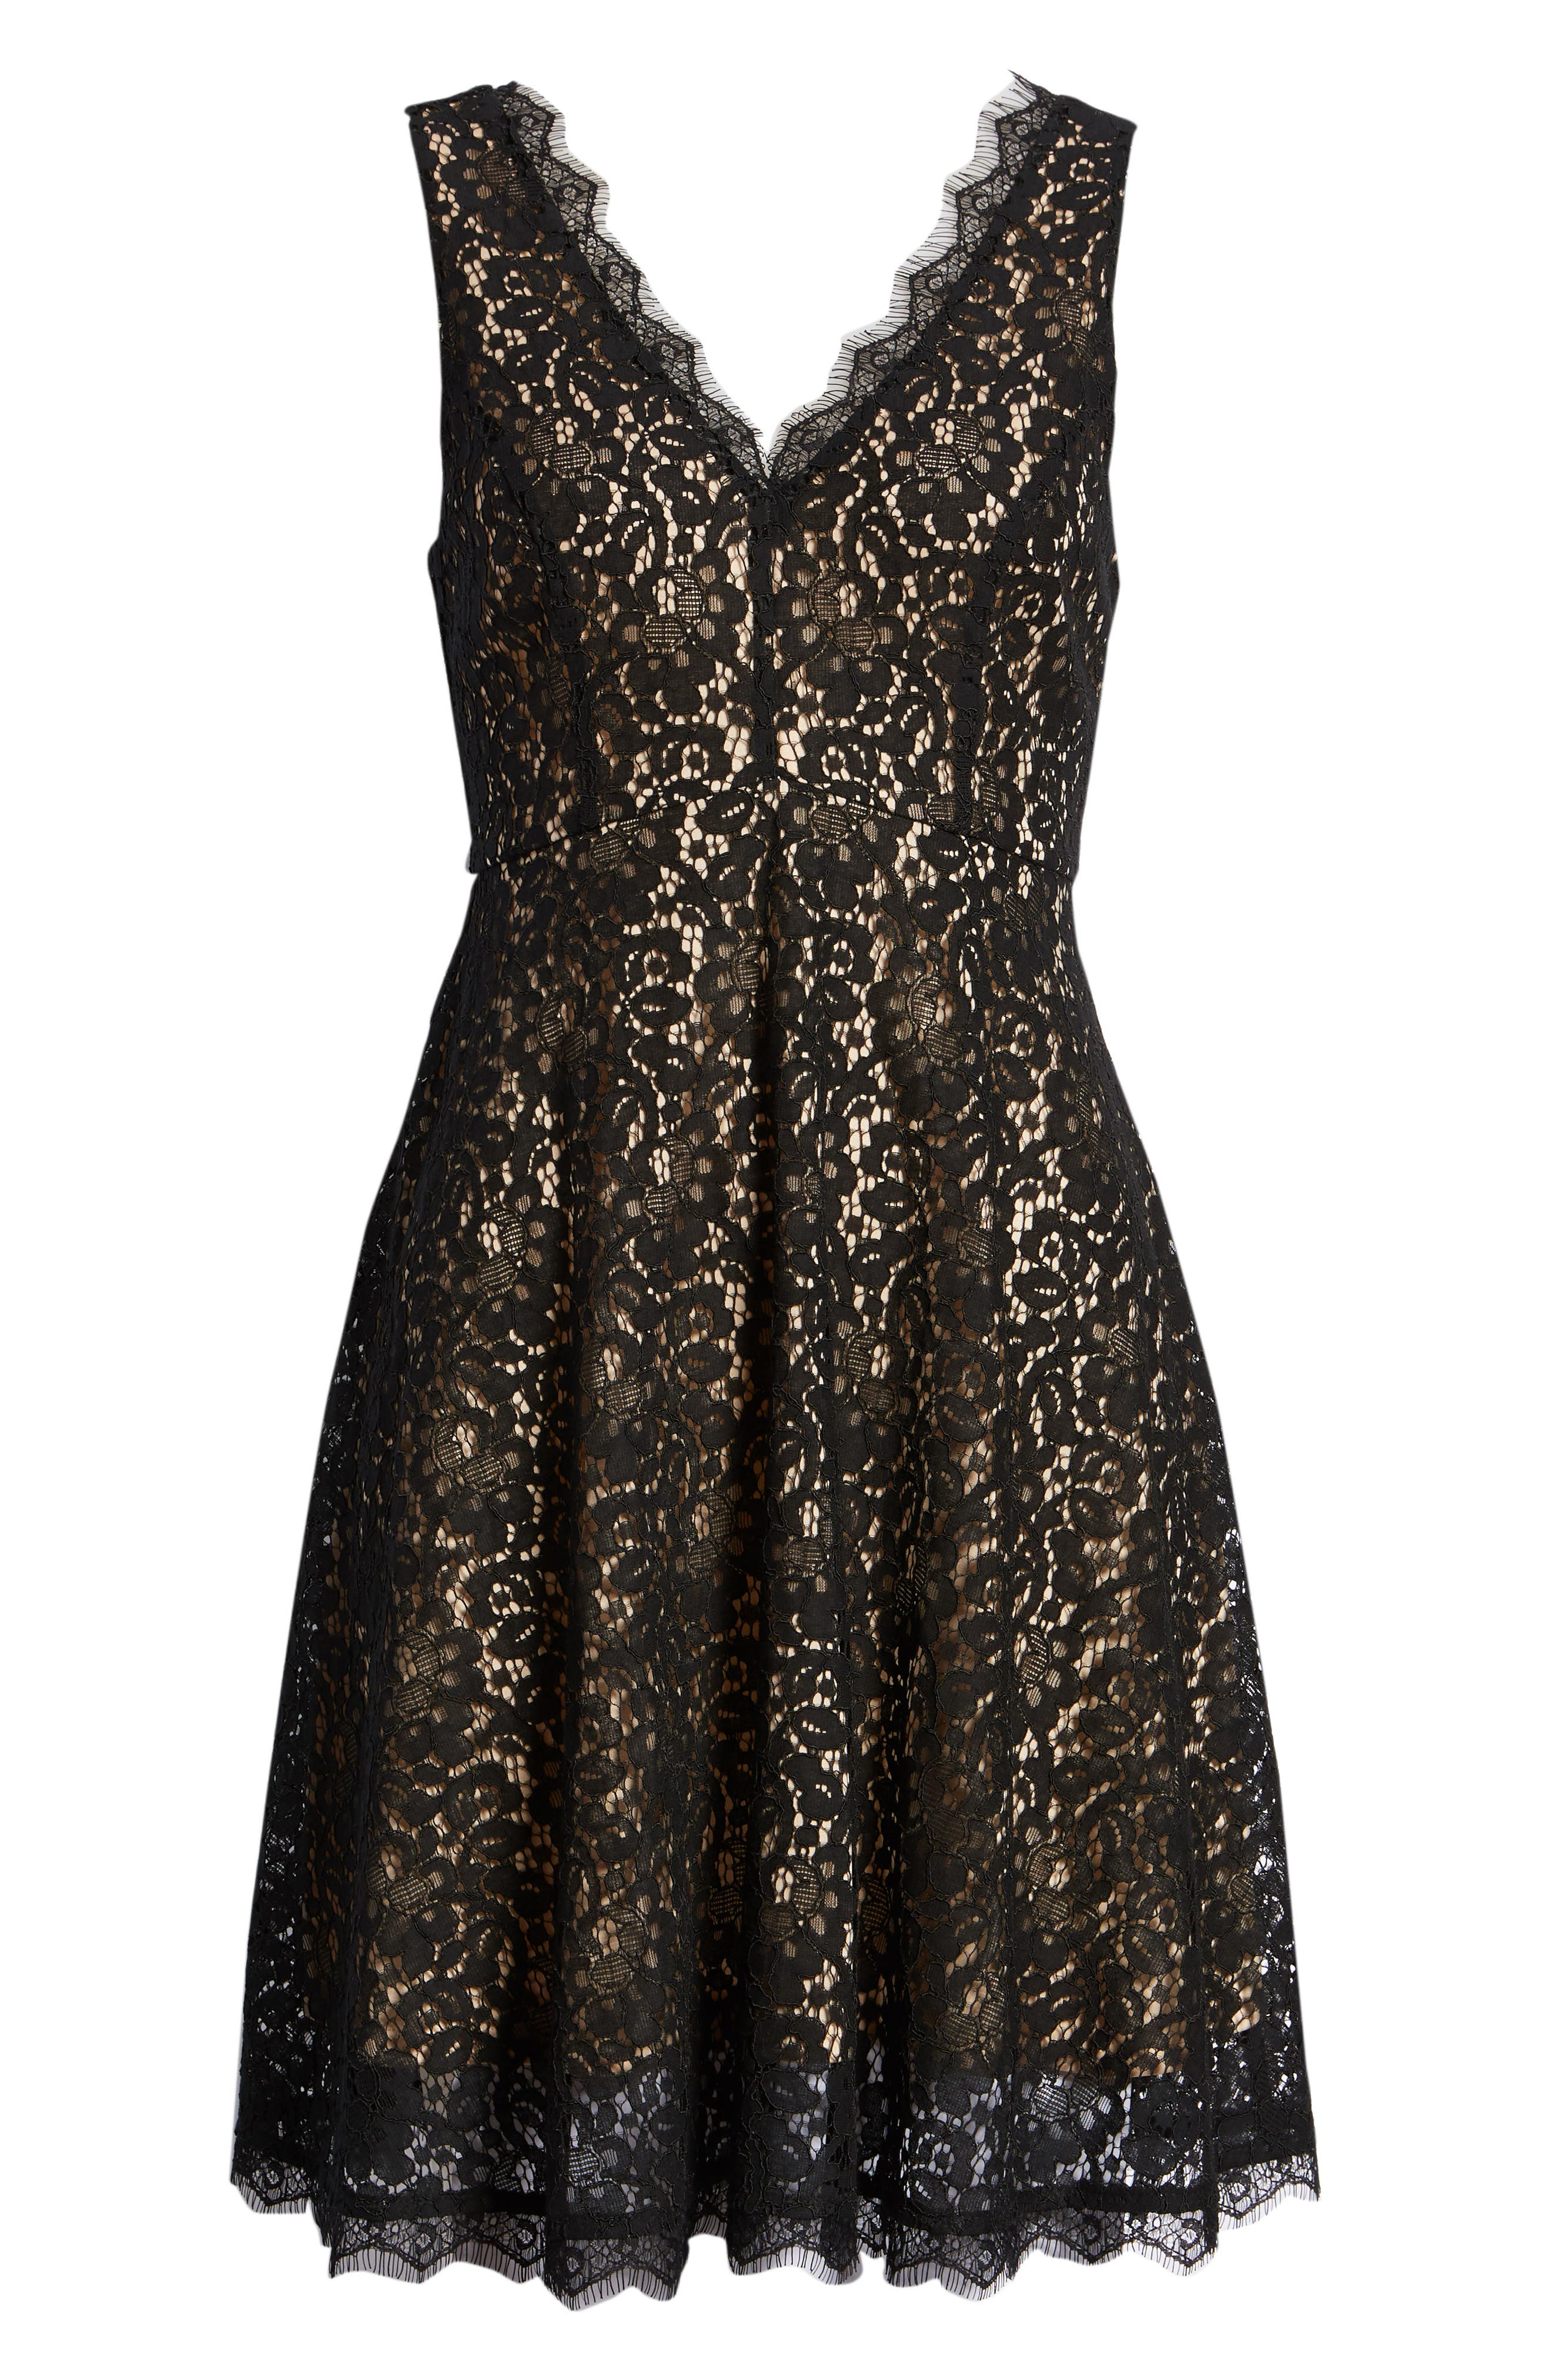 Lace Fit & Flare Dress,                             Alternate thumbnail 7, color,                             001